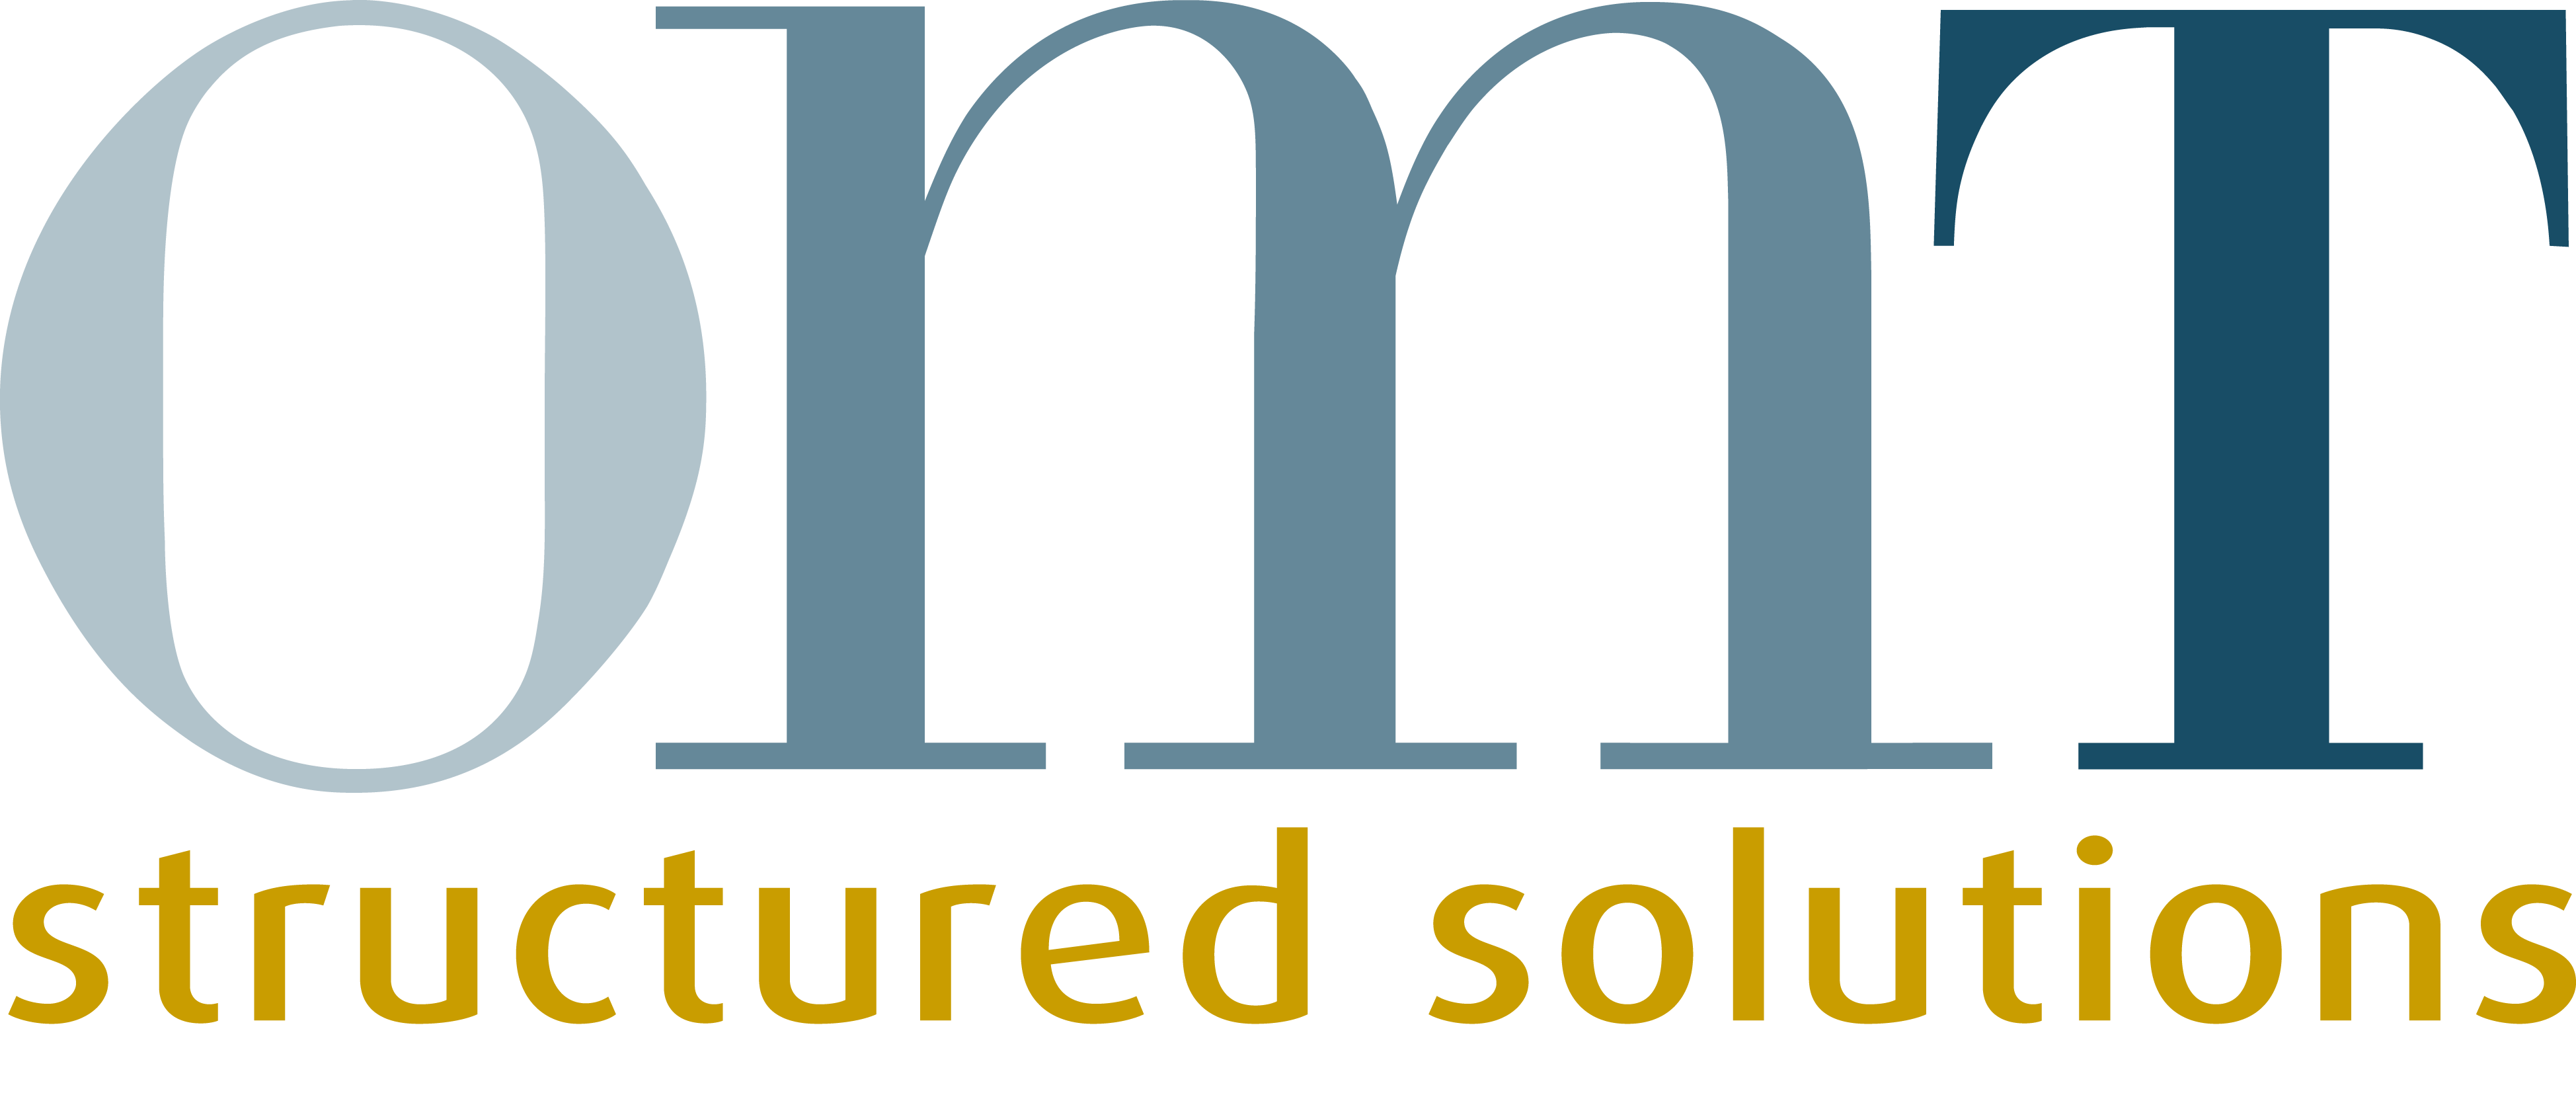 omt structured solutions Mobile Logo